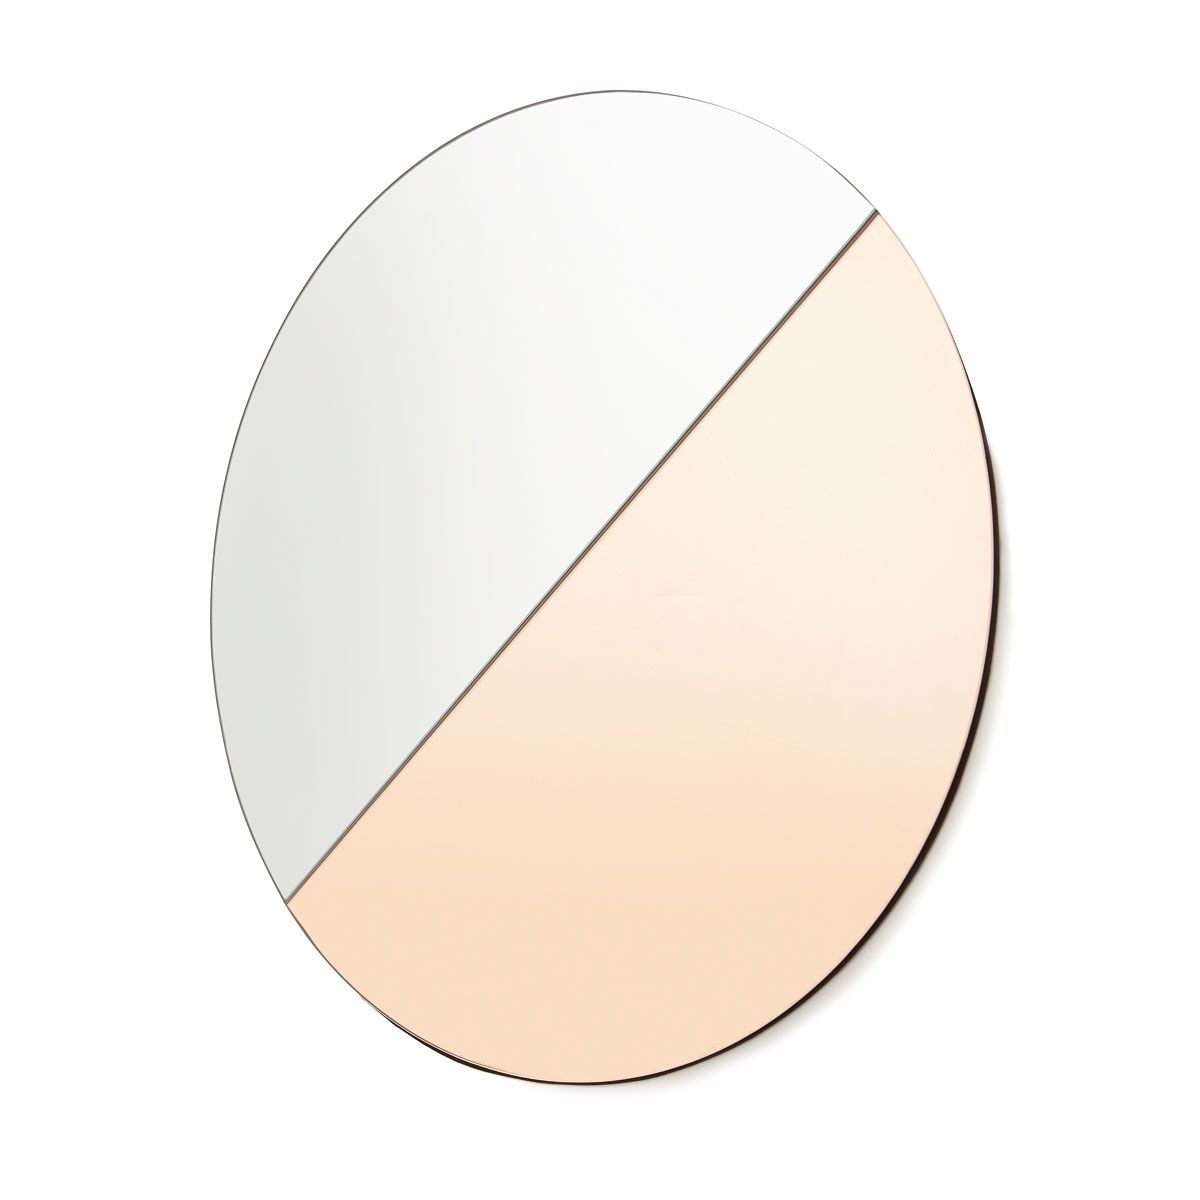 Bathroom Mirrors Kmart two tone tinted mirror - rose gold & clear | kmartnz | decor